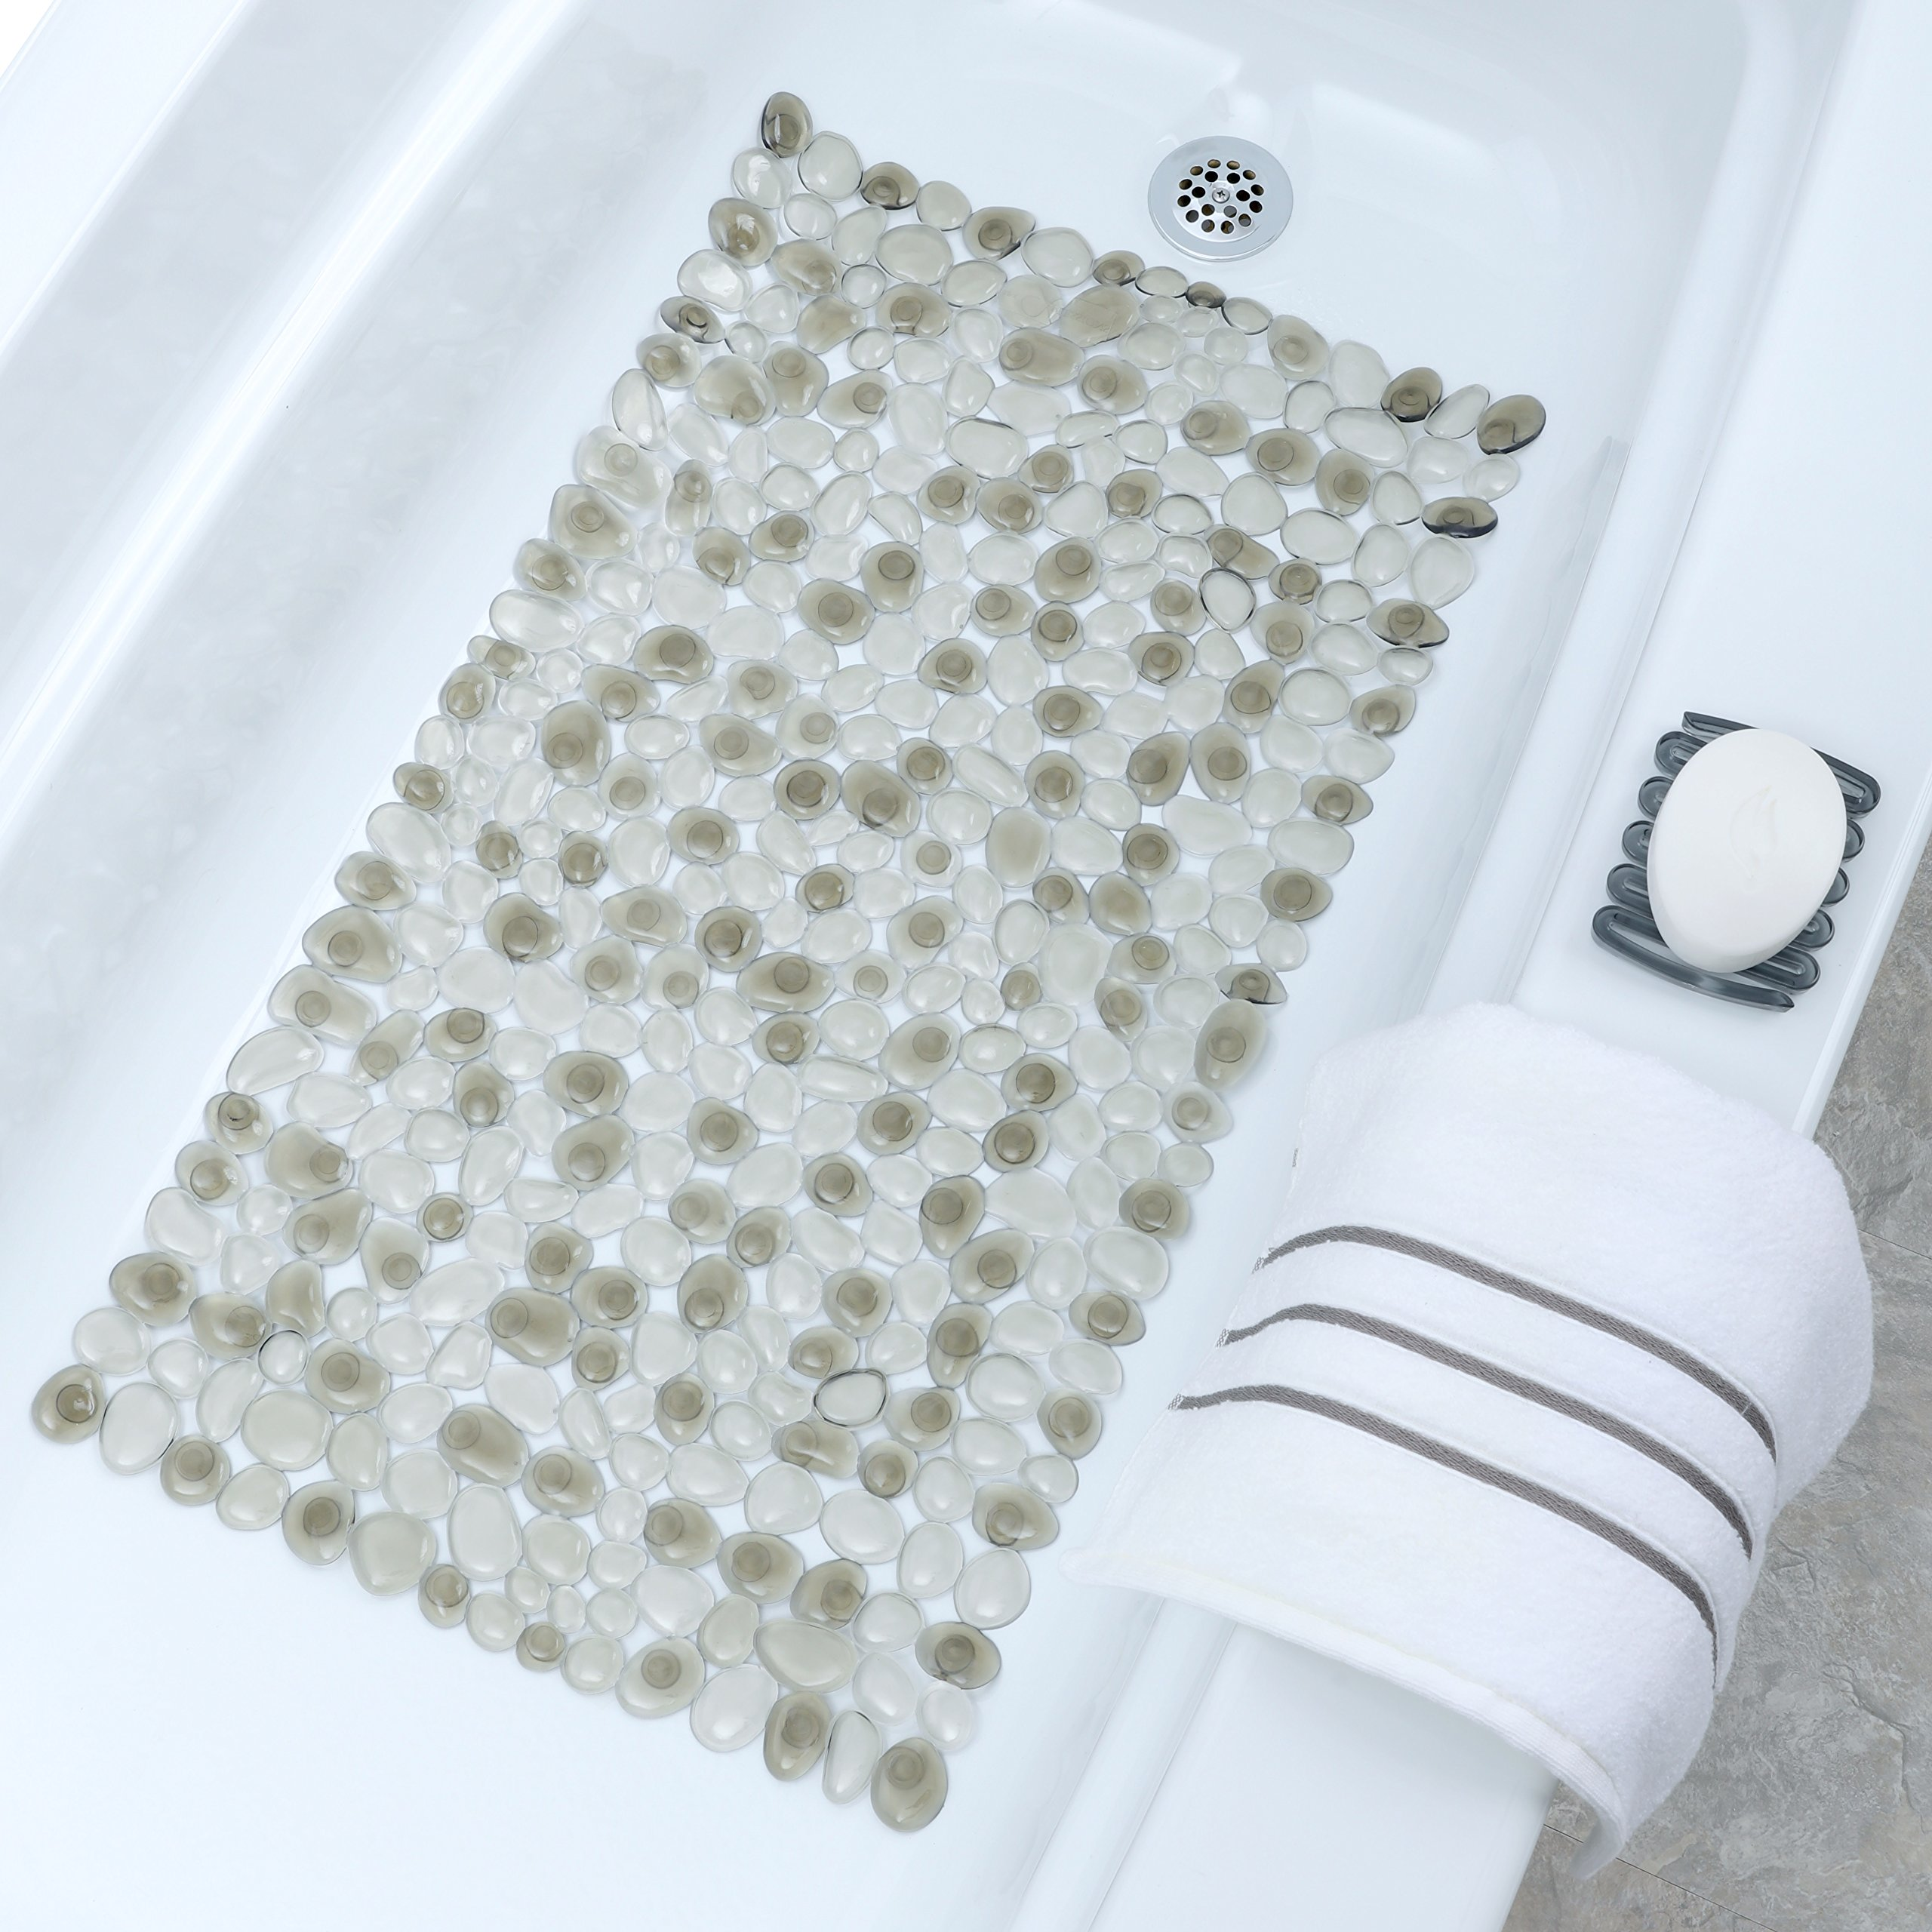 SlipX Solutions Gray Pebble Bath Mat Feels Great on Tired Feet & Helps Prevent Slips (Looks Like River Rocks, 140+ Suction Cups, Machine Washable)